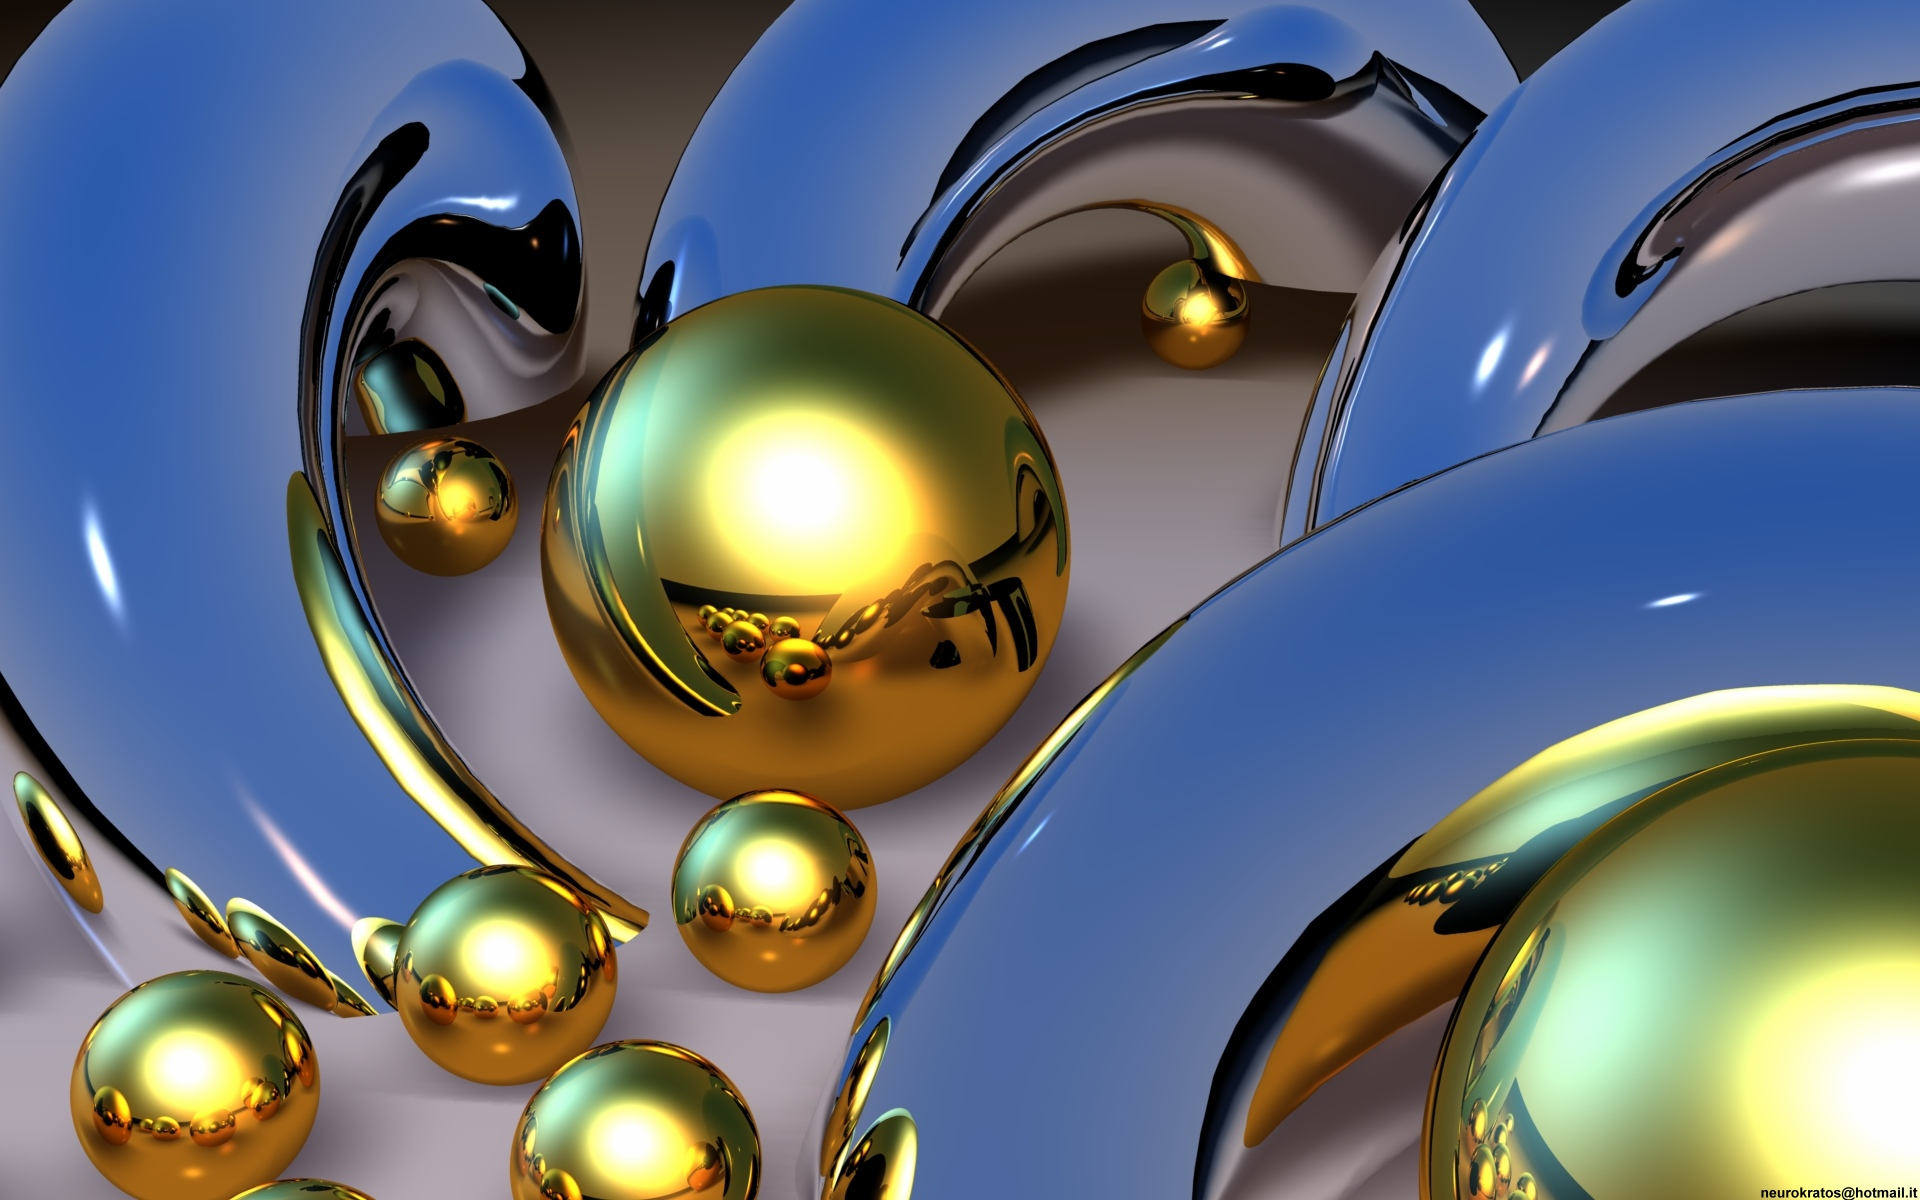 CGI - Cool  Chrome Gold Silver Metal CGI Wallpaper